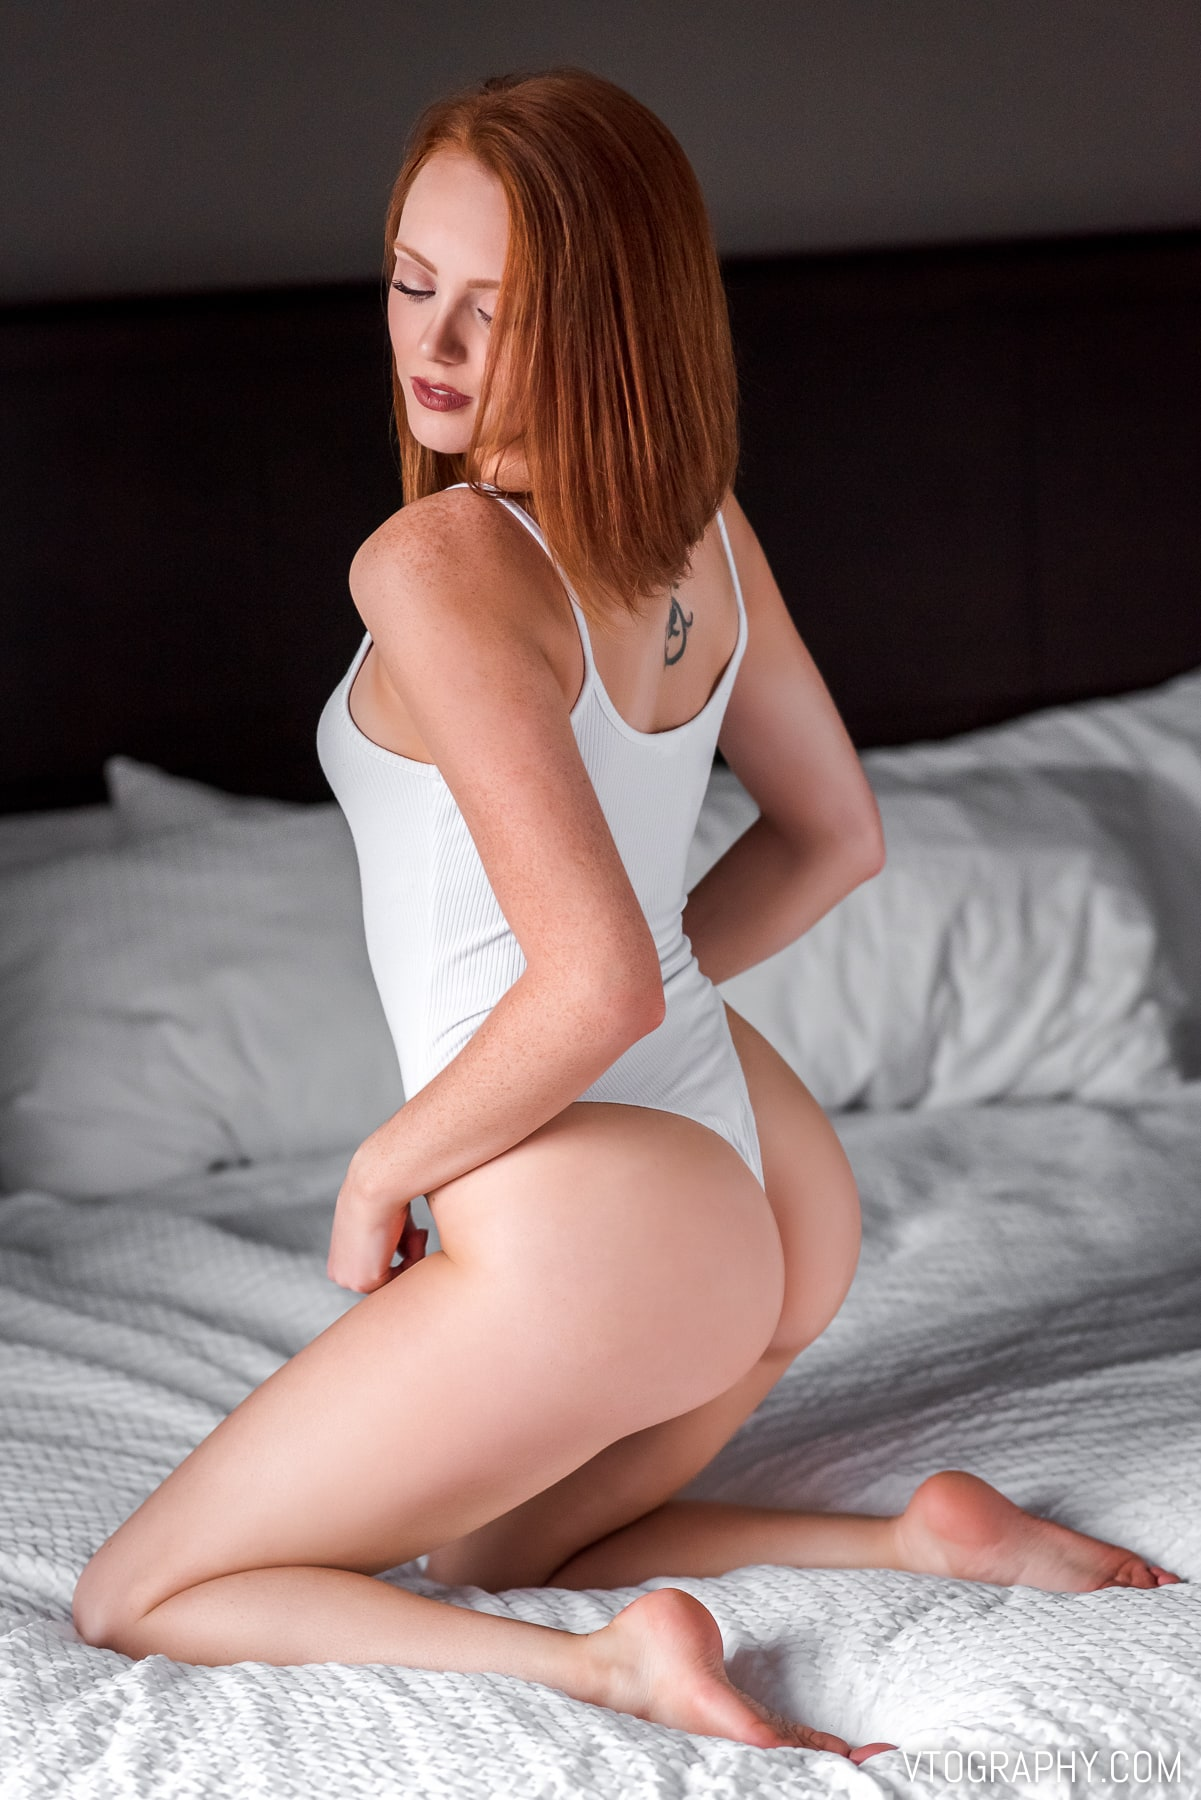 Red haired model Ashley in white bodysuit